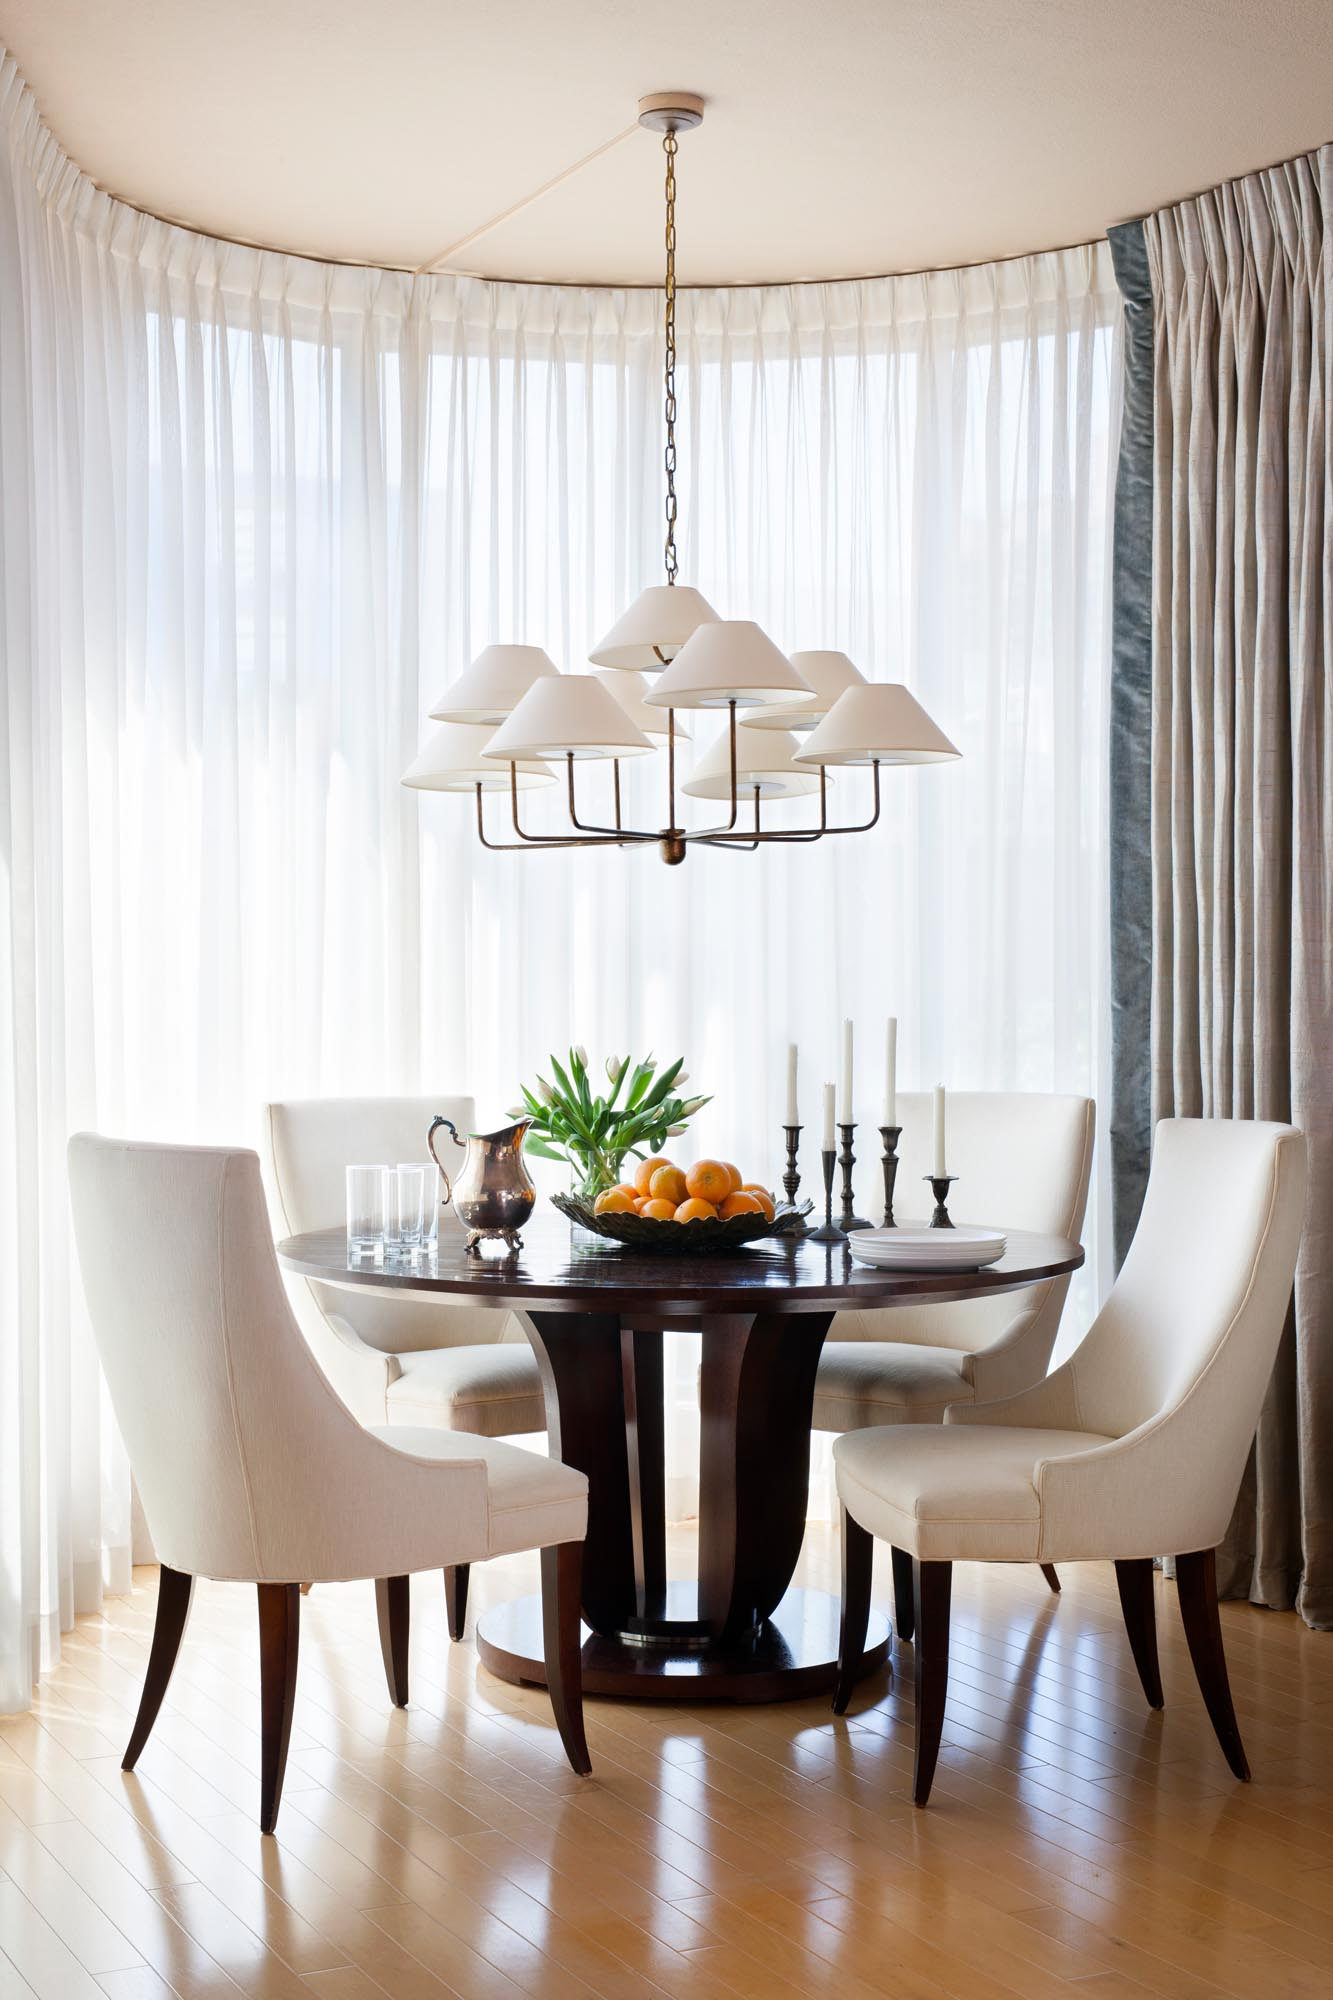 Modern Dining Room Lounge with table and chairs for four and white hanging lamp.